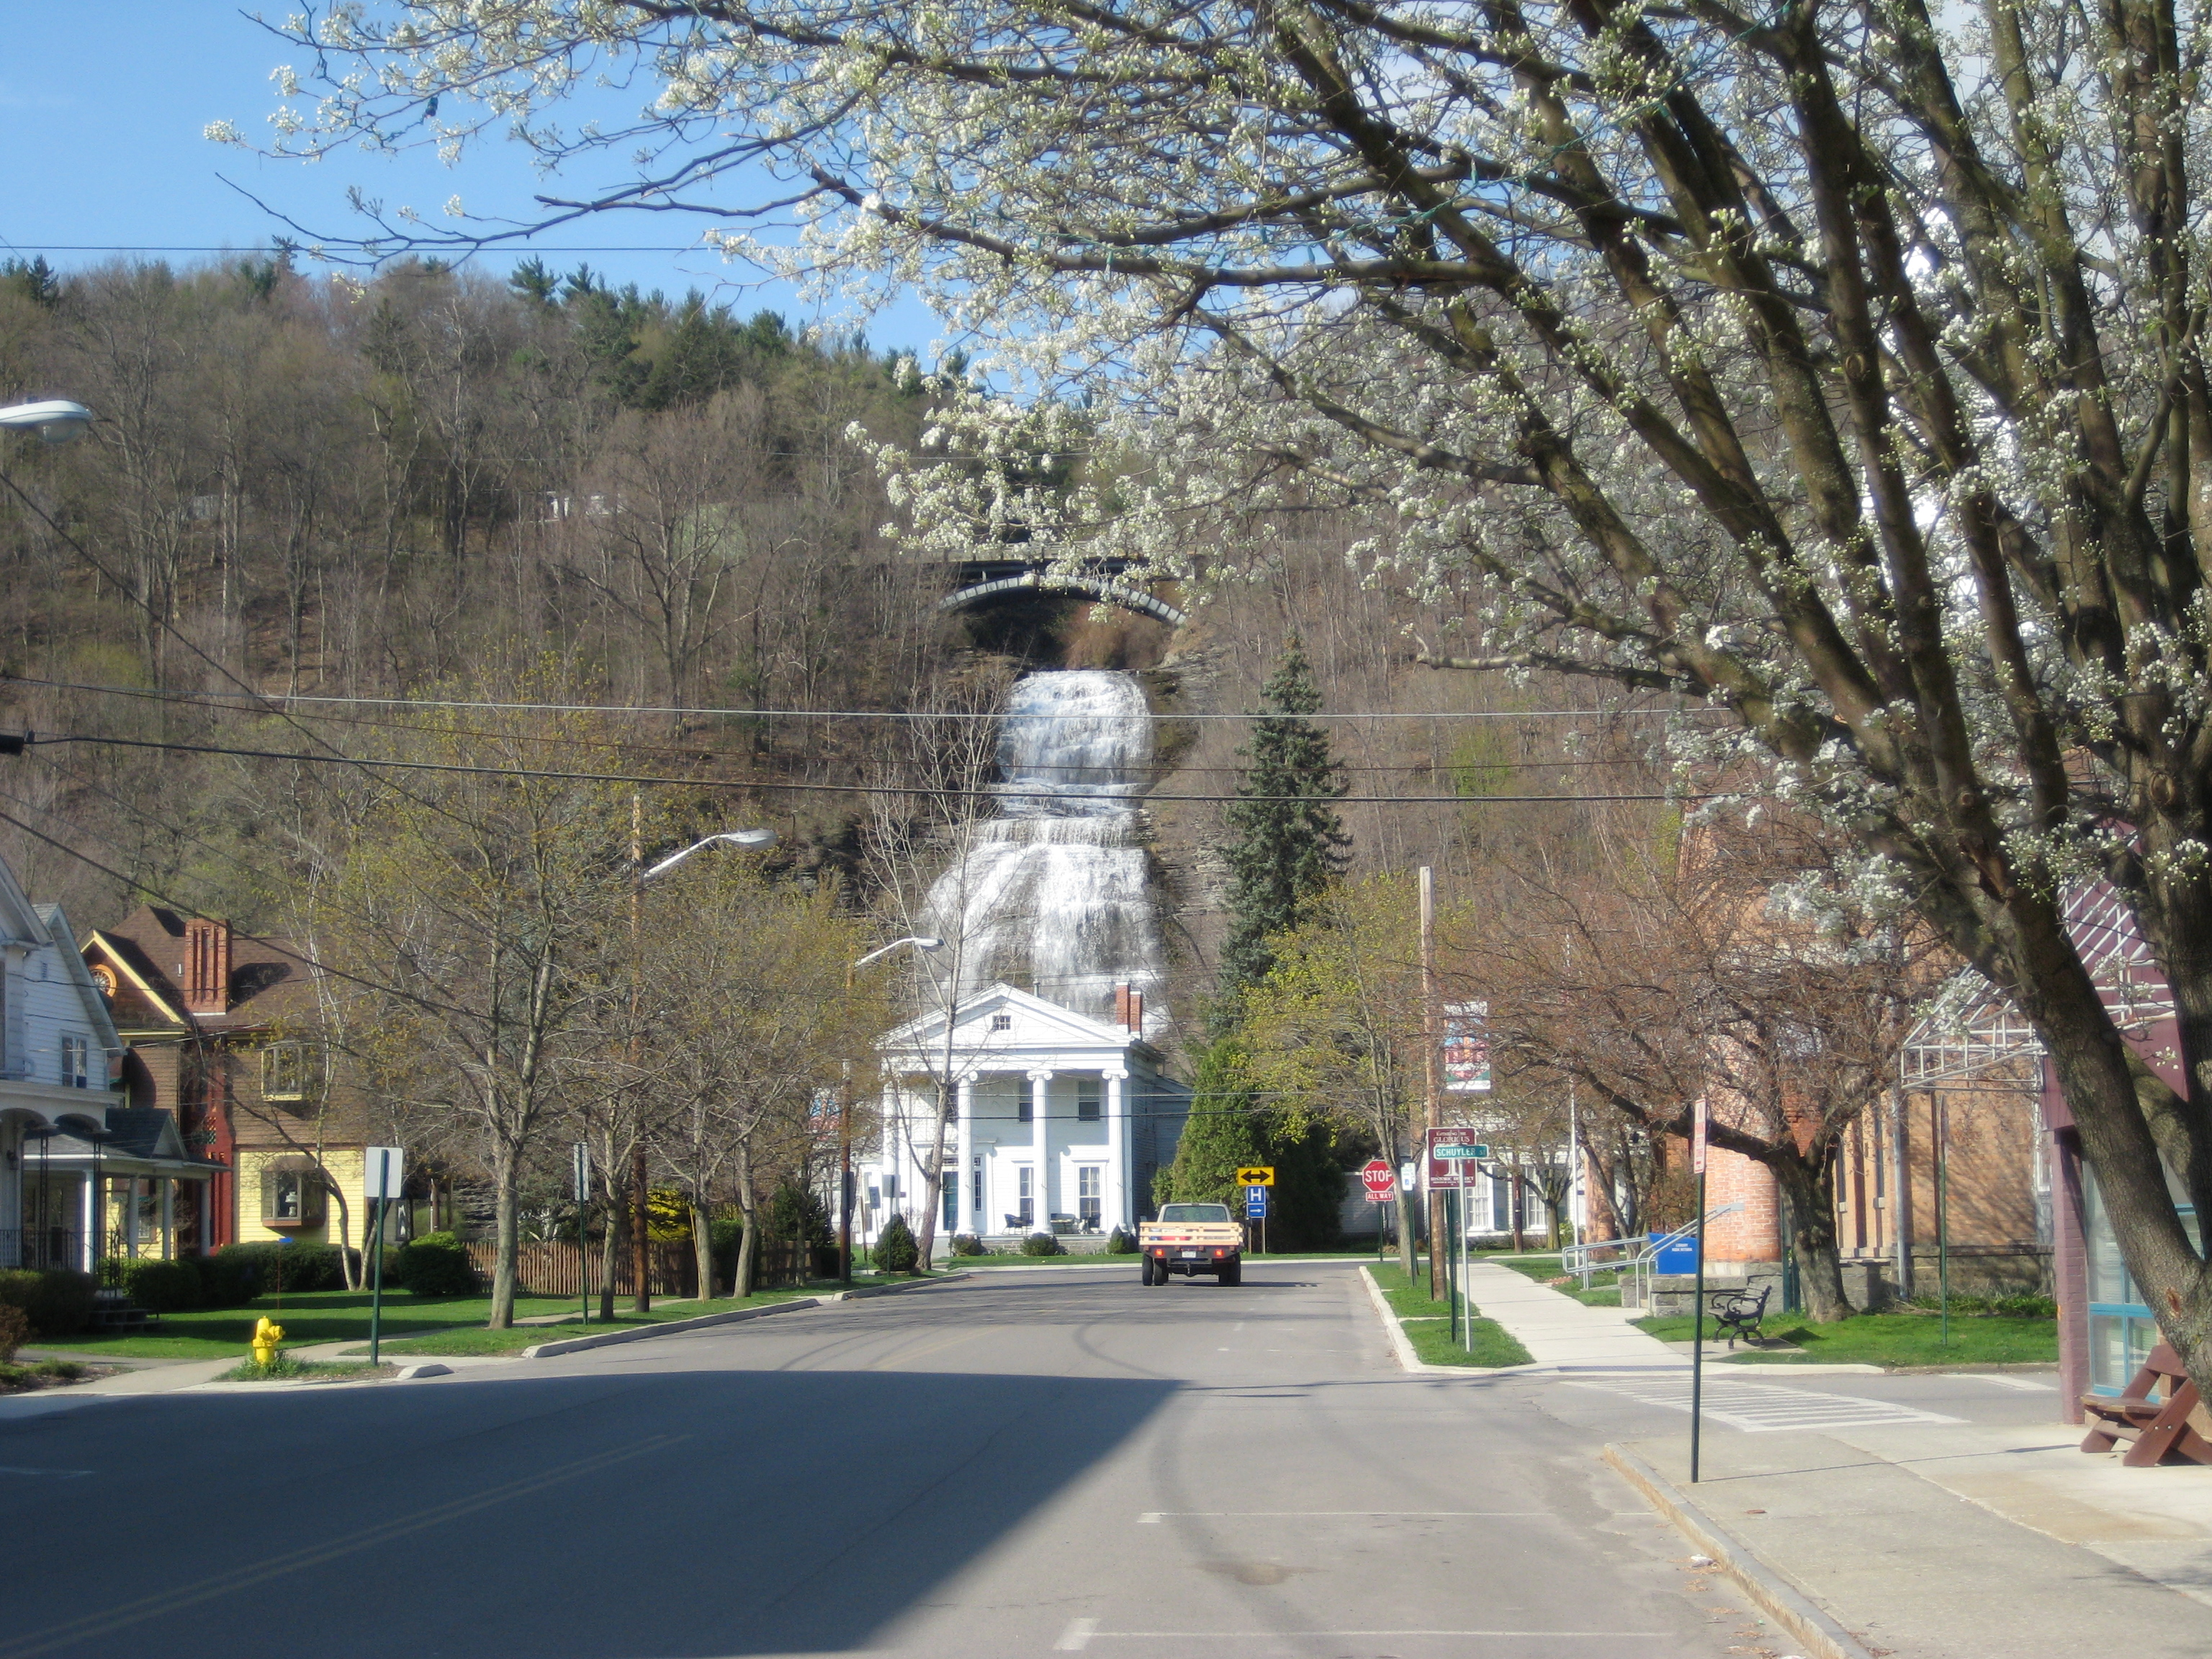 montour dating The montour railroad's beginnings, along with the first two mines along the railroad are described in  maps dating back to the 1850s: .